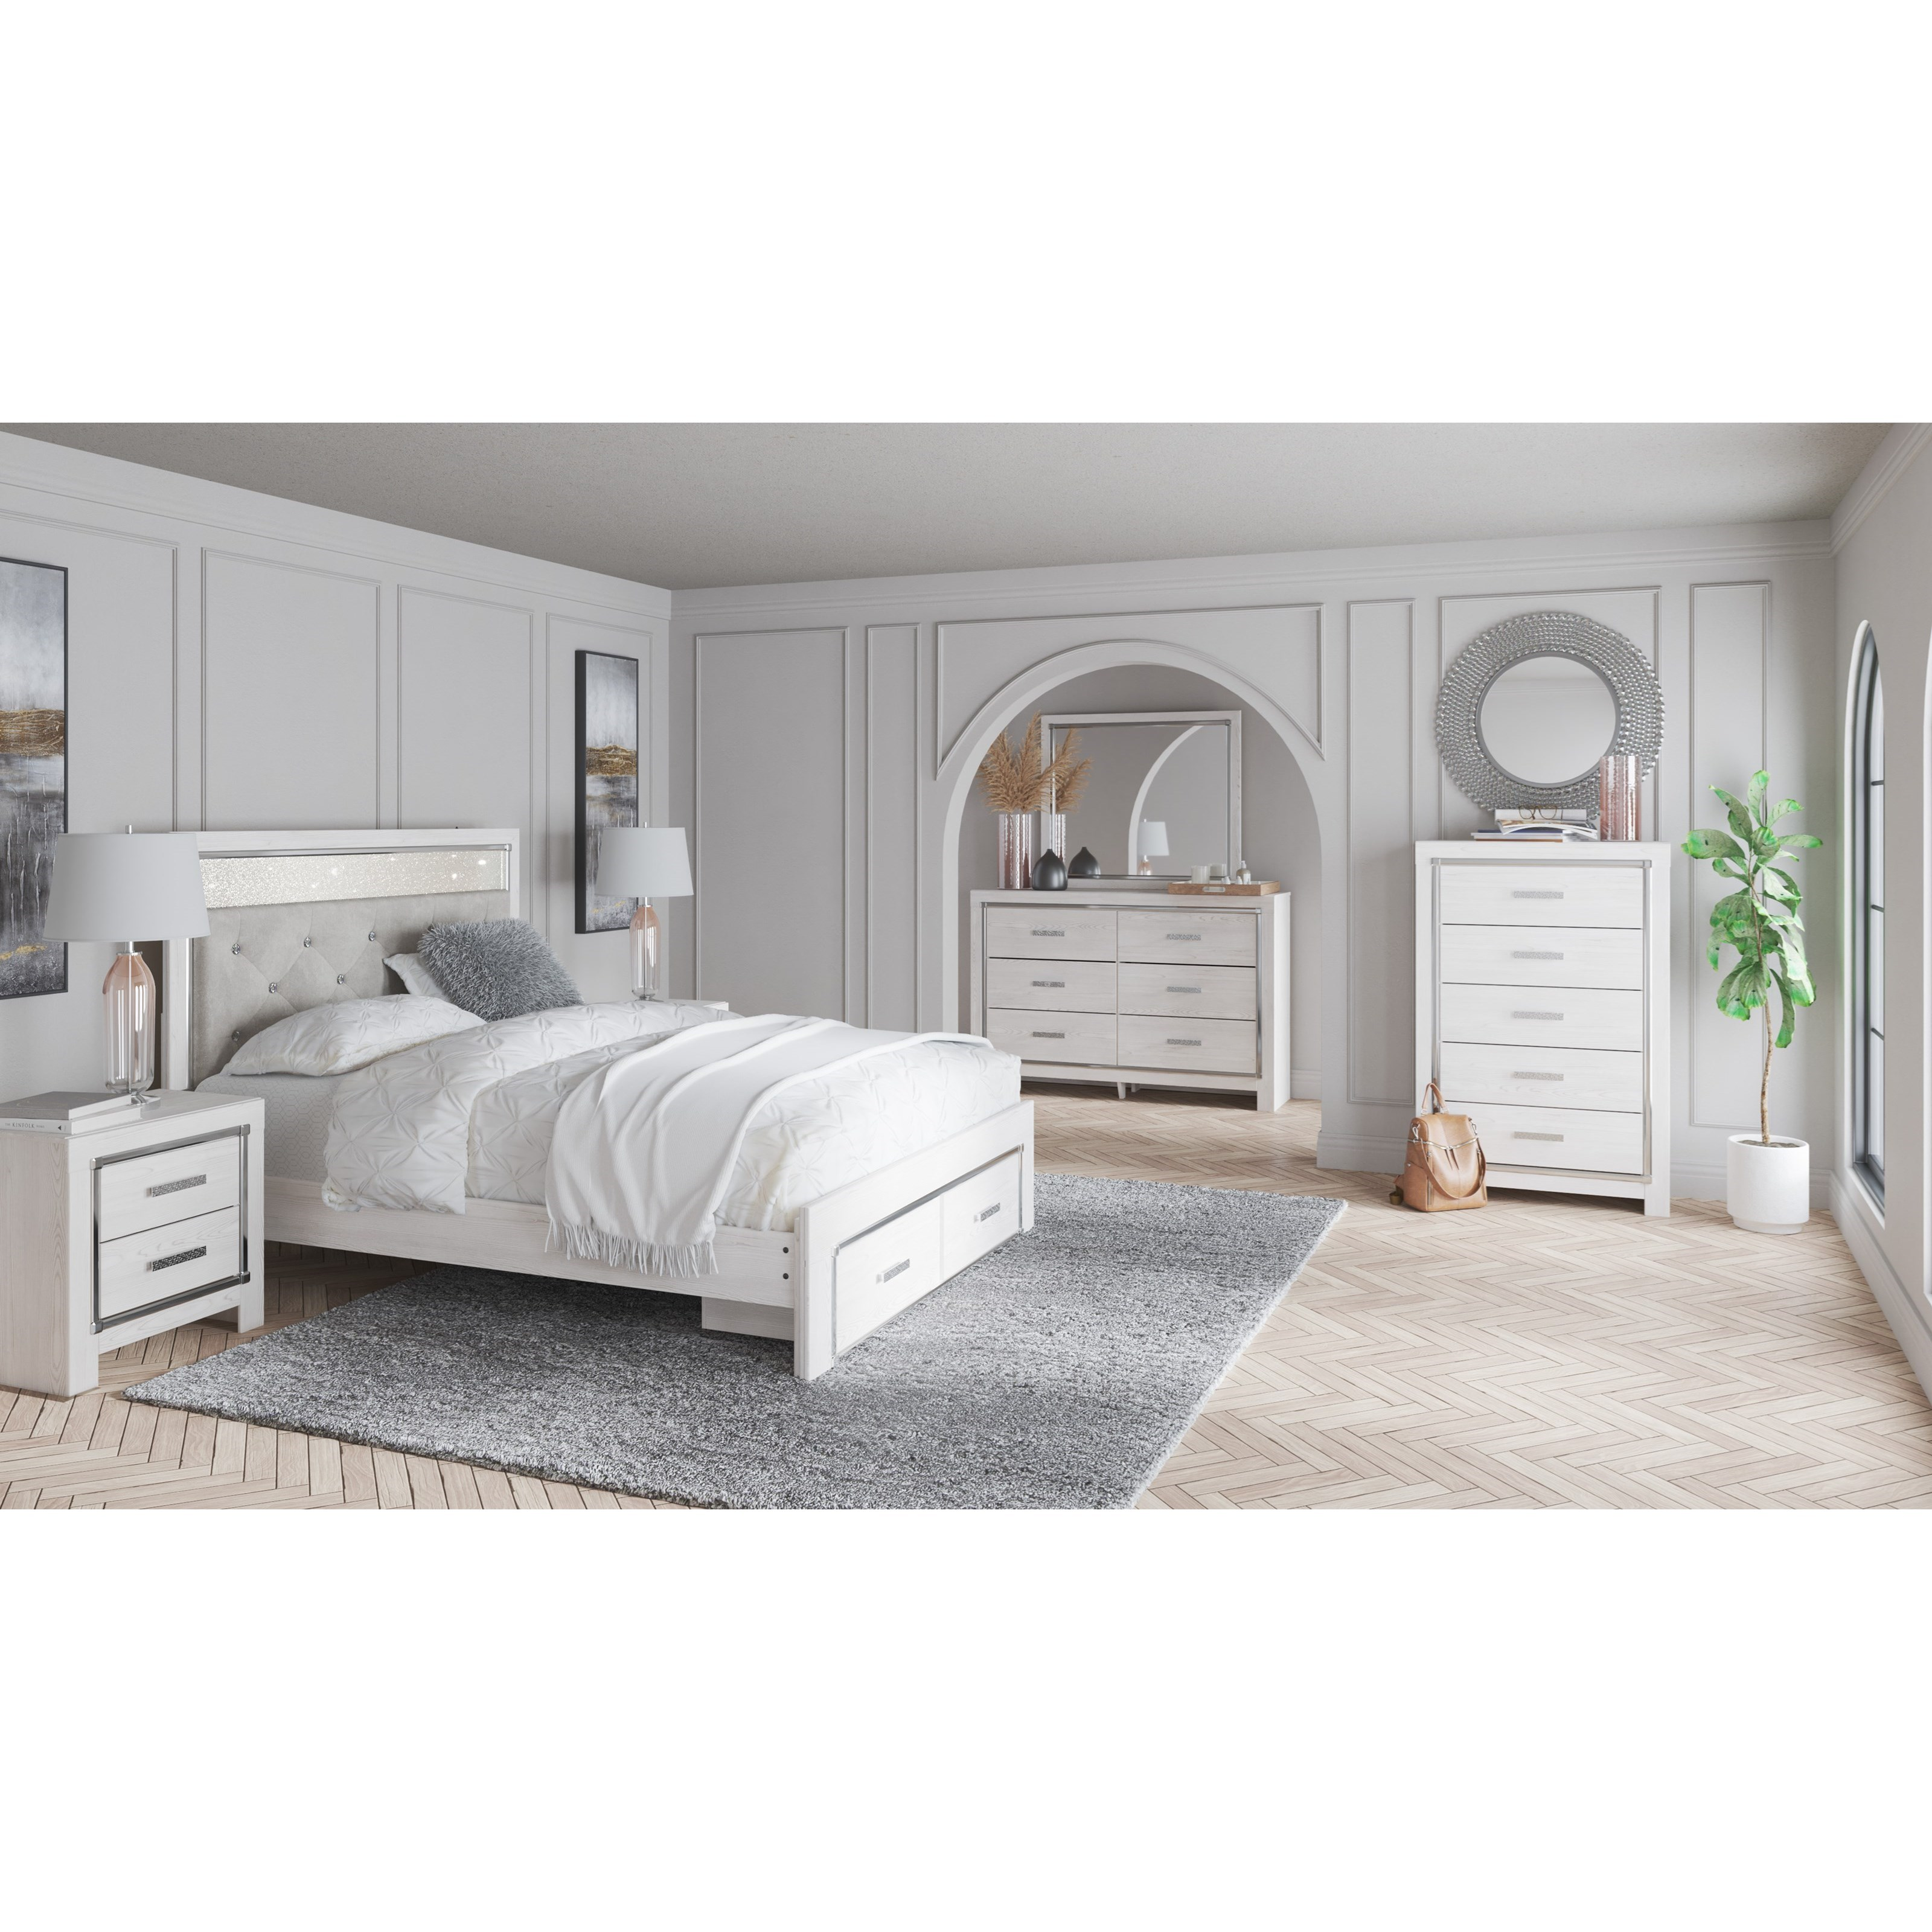 Altyra Queen Bedroom Group by Signature Design by Ashley at Northeast Factory Direct